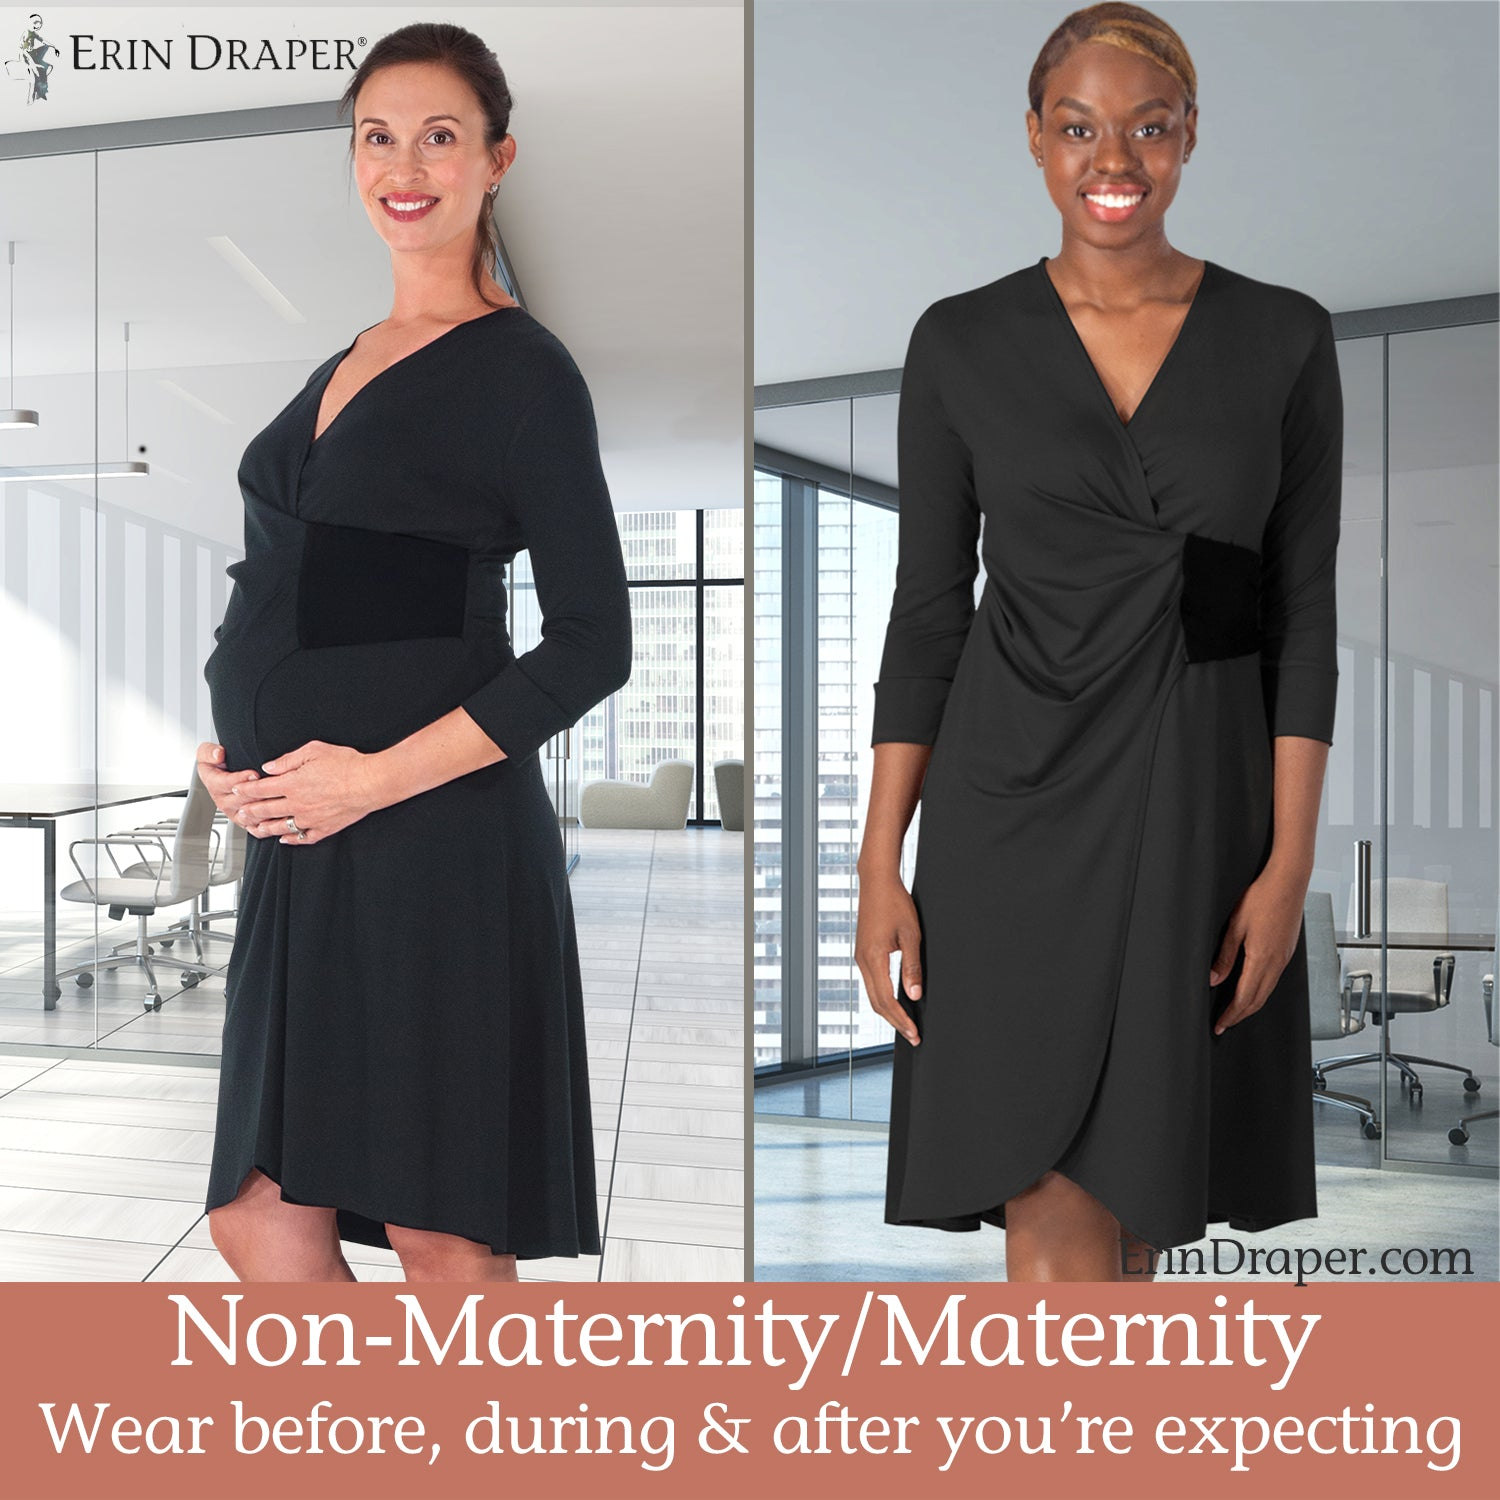 Eco-Friendly Non-Maternity / Maternity Dresses for Work!